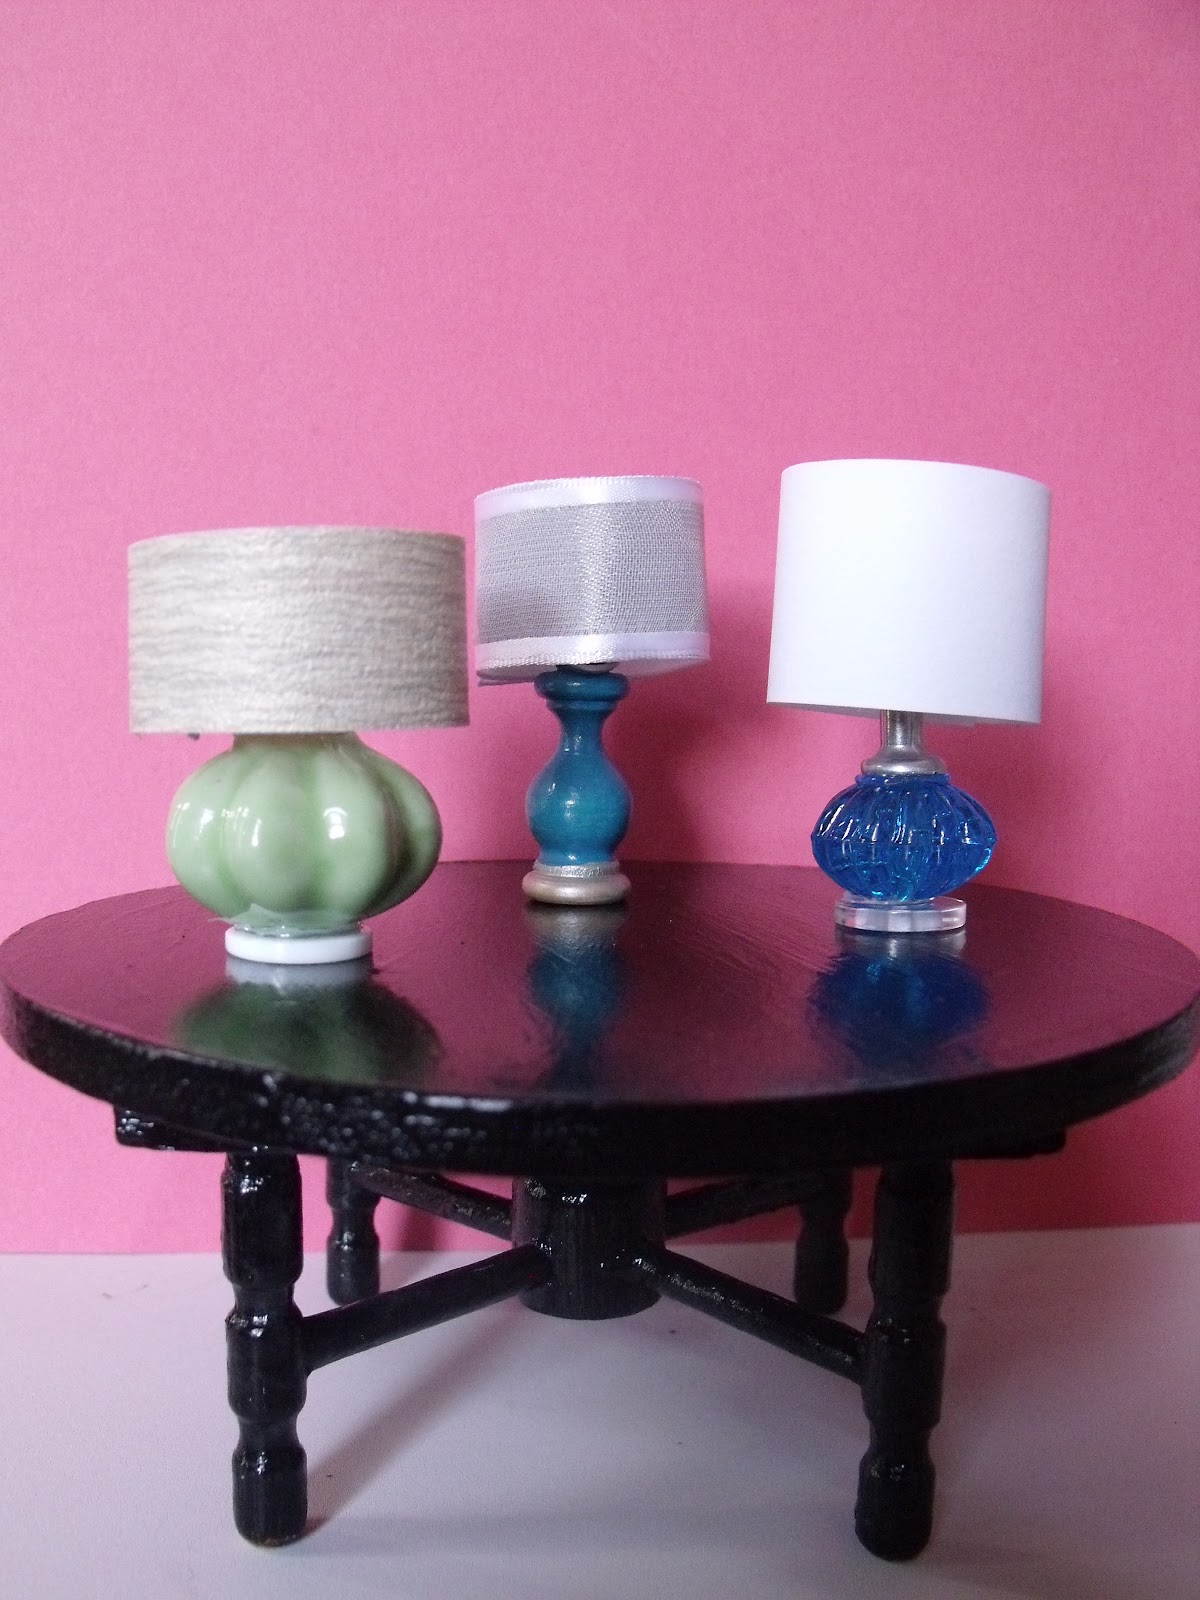 margaret_loves: margaret_loves making lamps